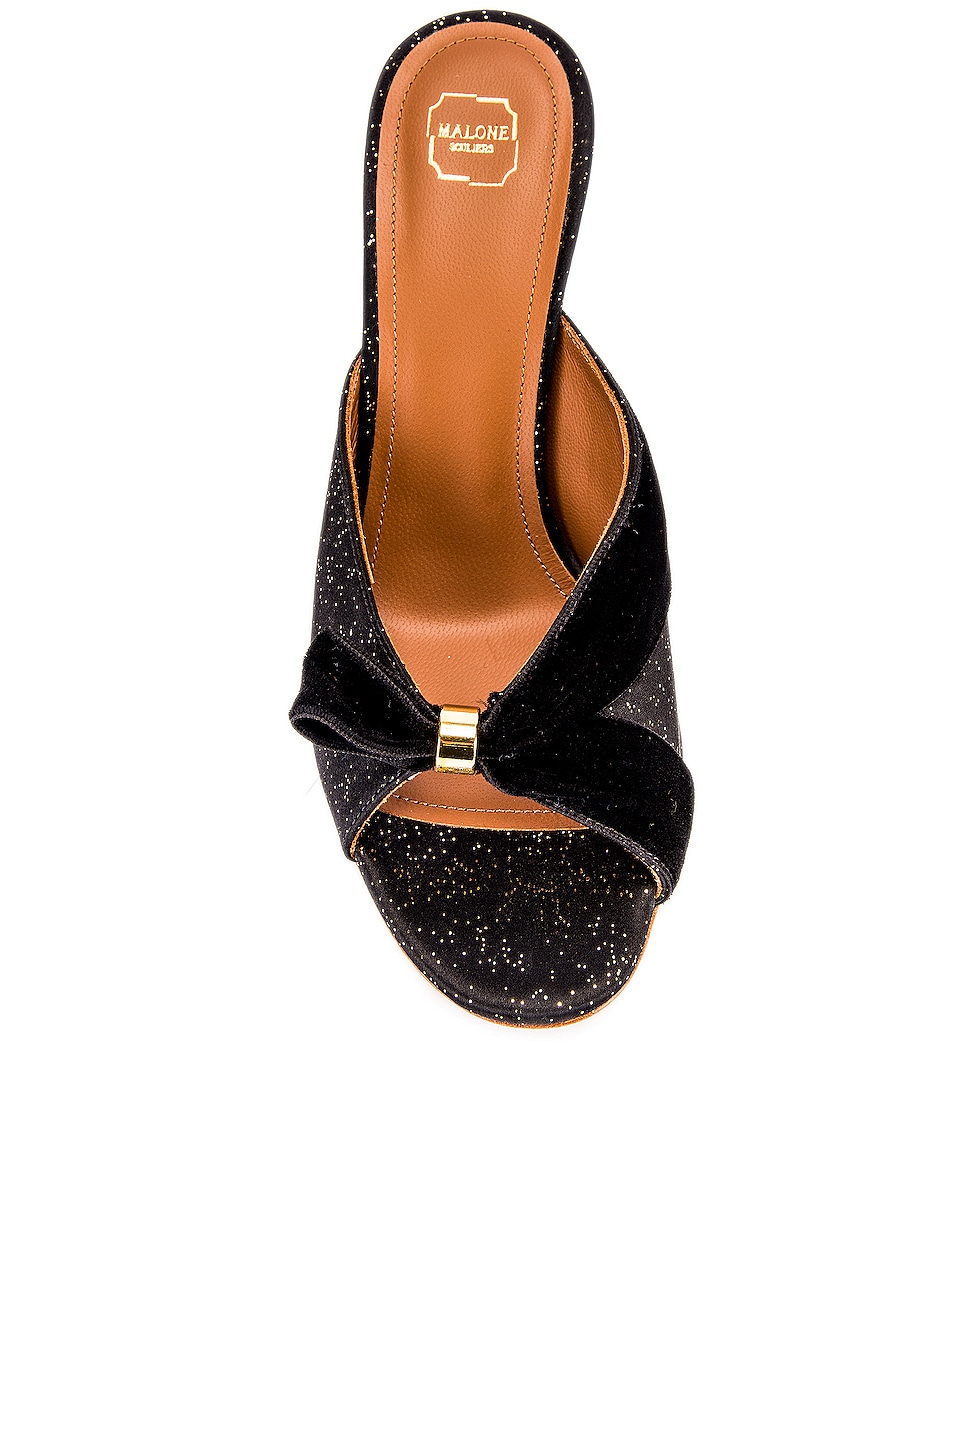 Image 4 of Malone Souliers Paiige 85 Heel in Black & Gold